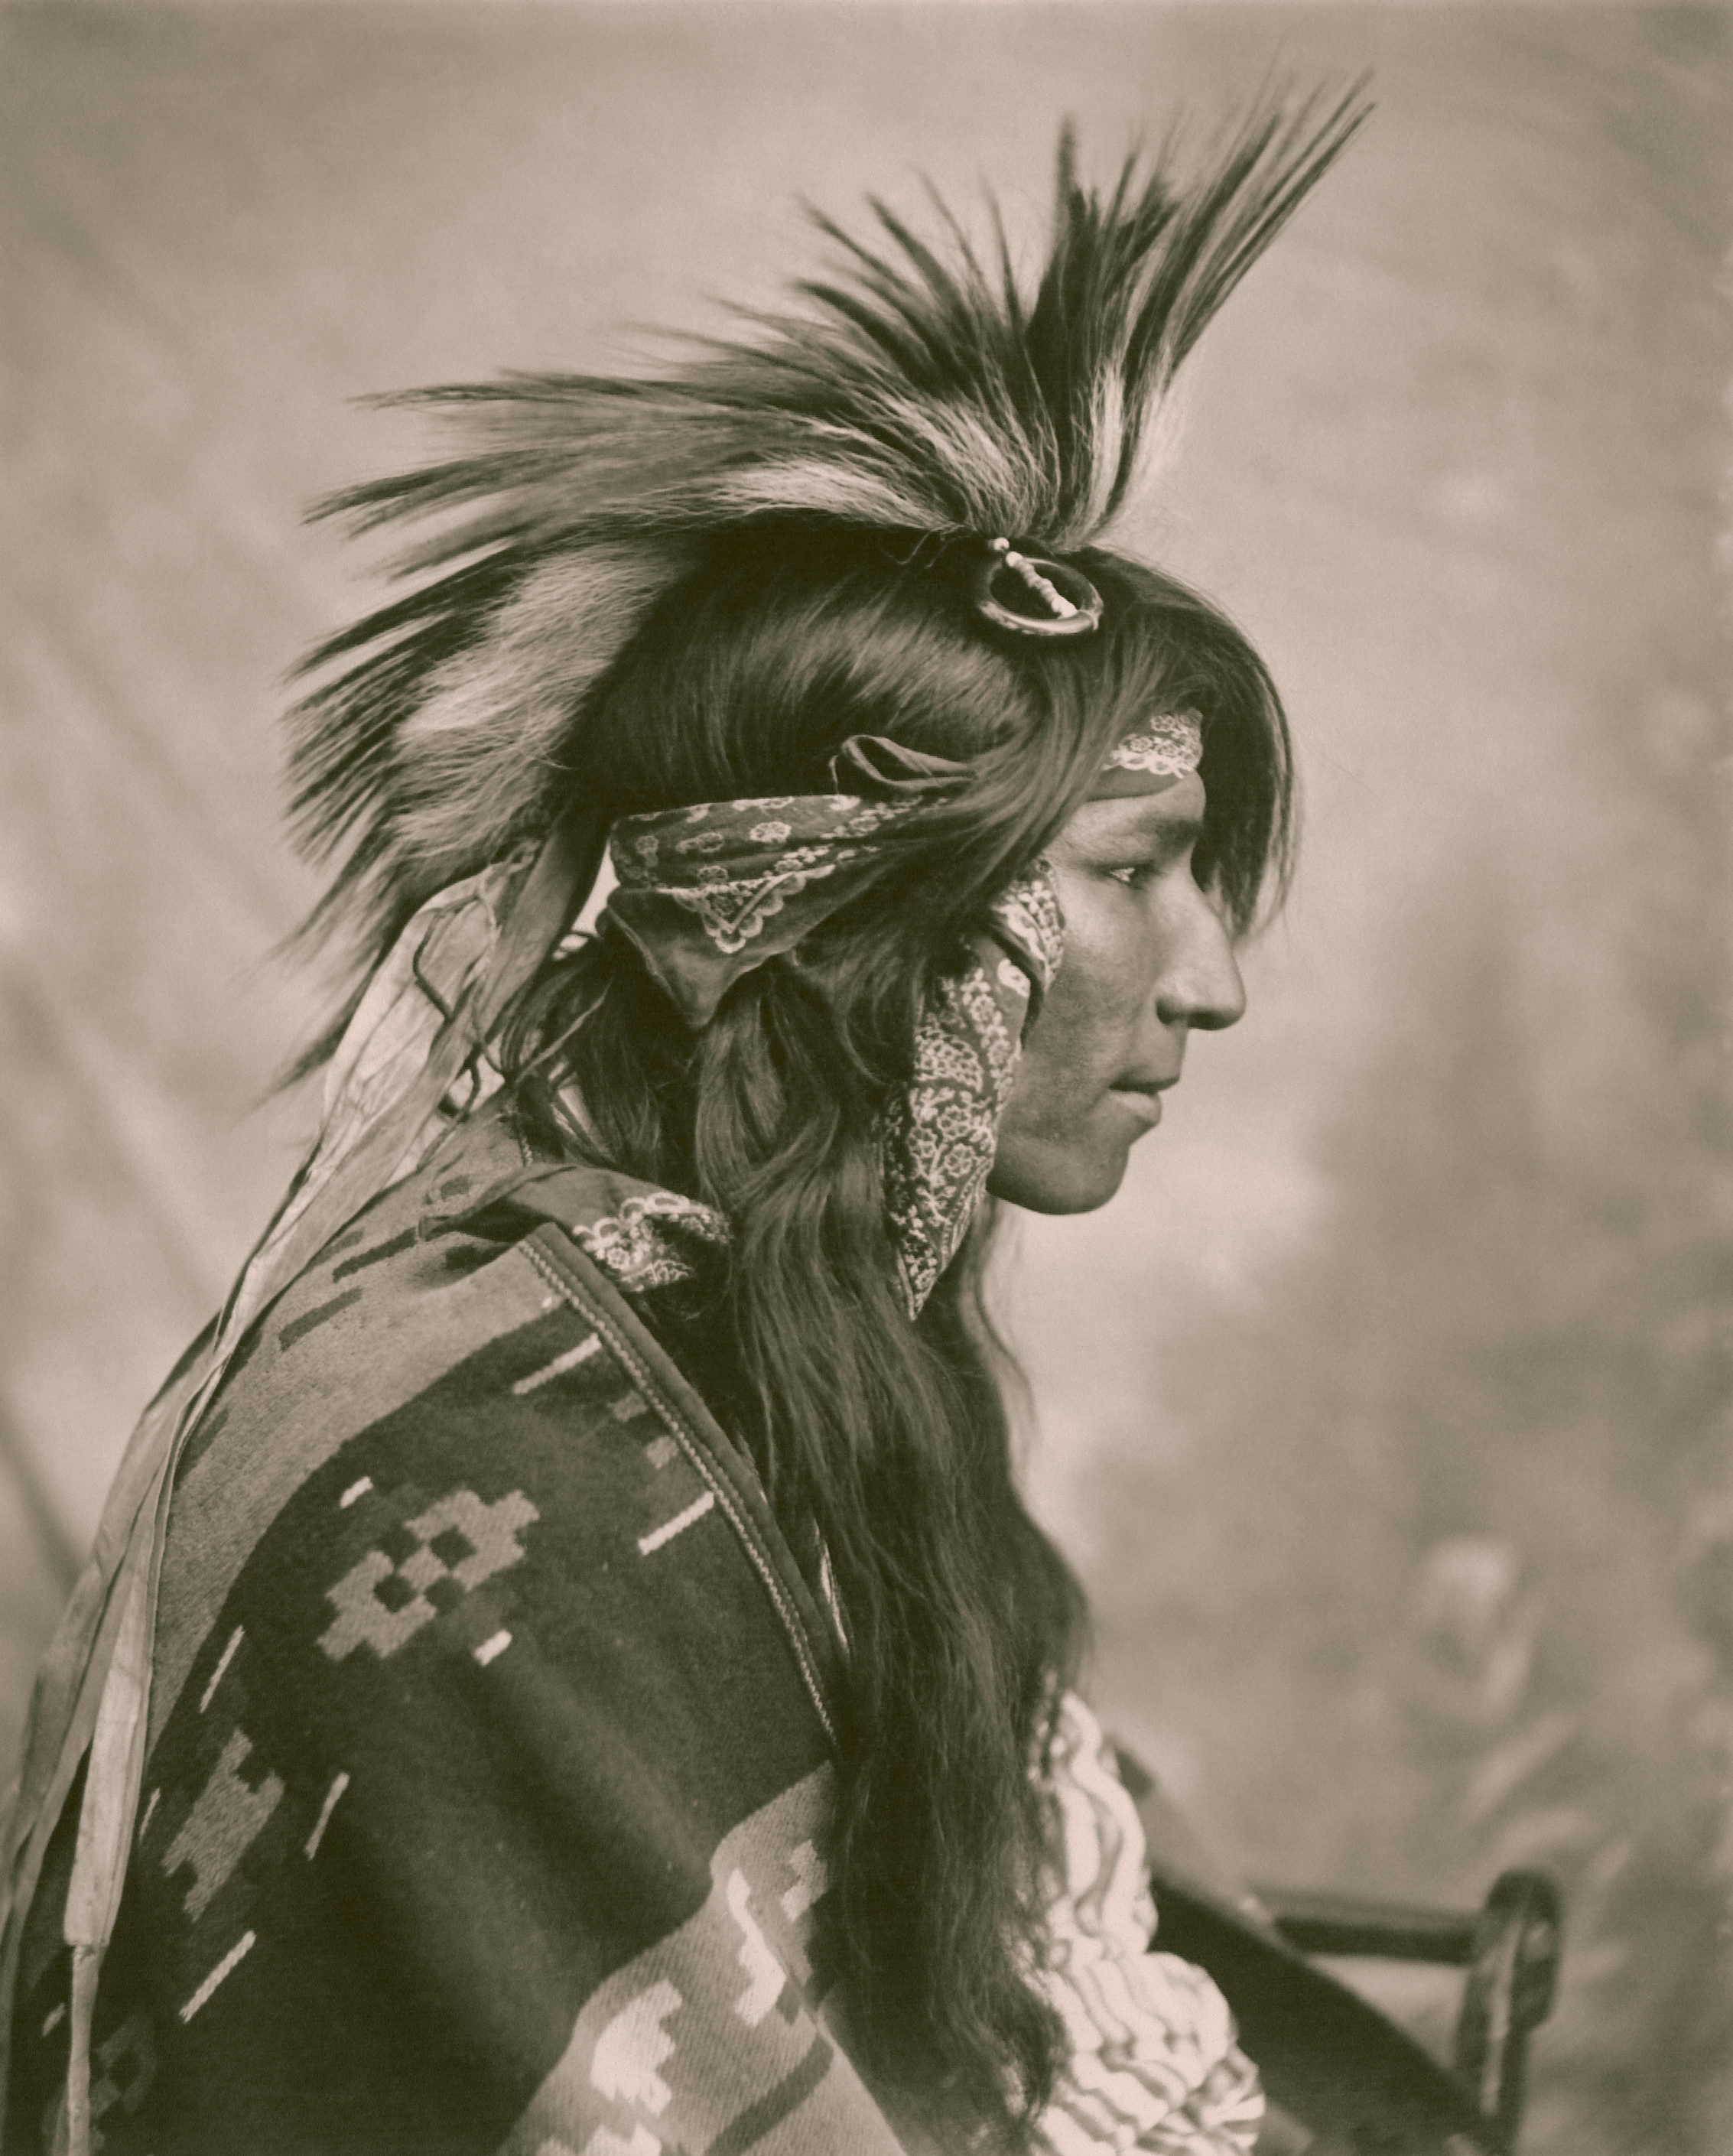 File:Cree Indian (HS85-10-13885) edit.jpg - Wikimedia Commons